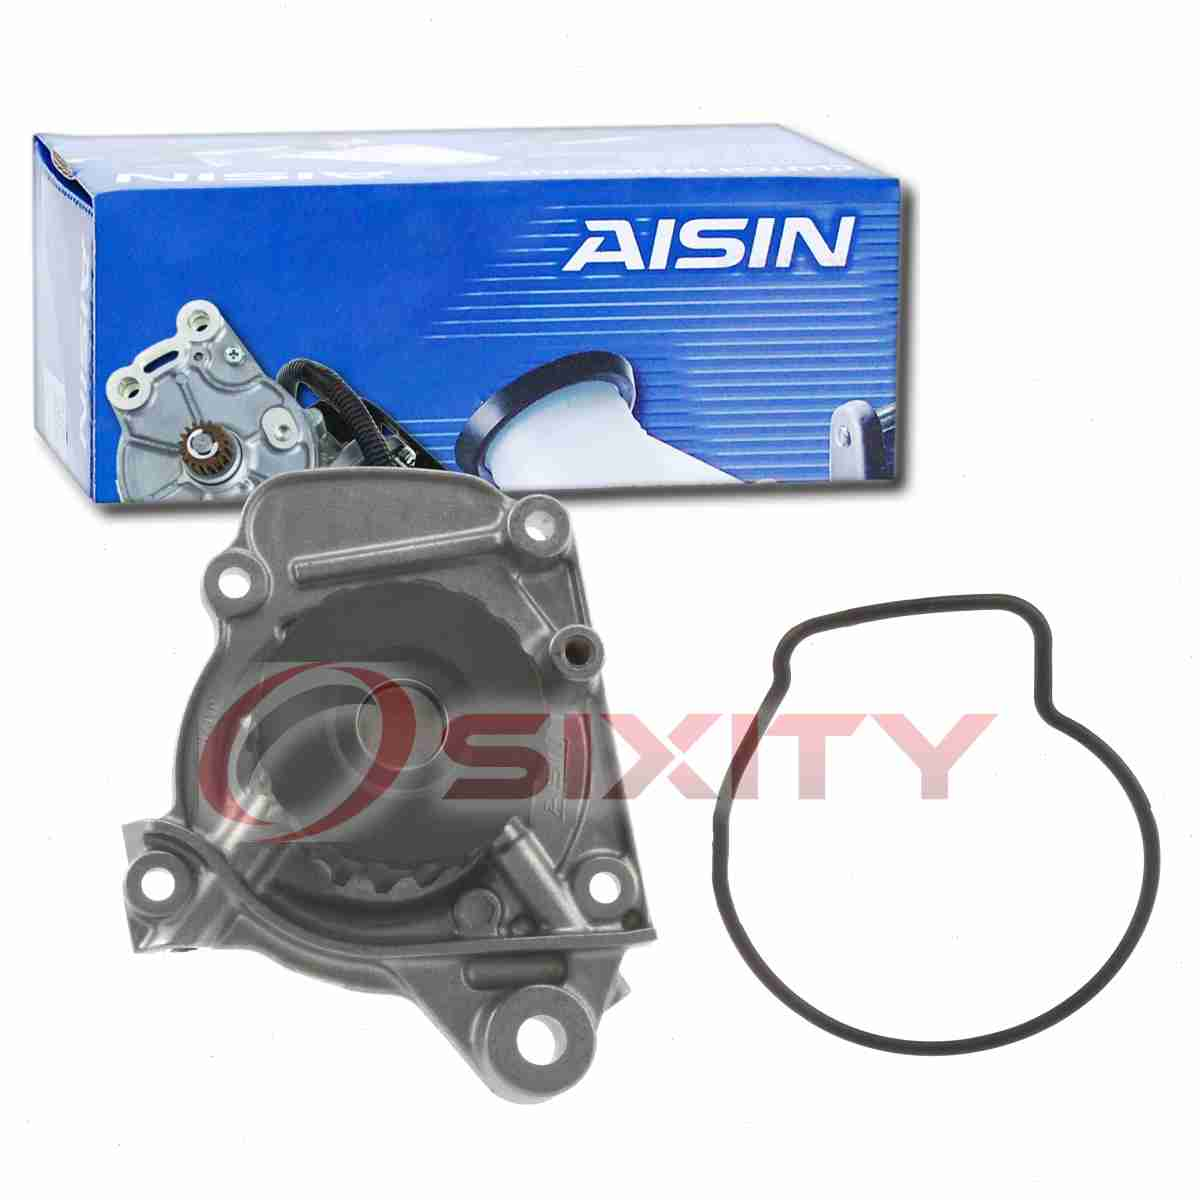 hight resolution of aisin water pumps are a direct oem compatible drop in replacement for your vehicle aisin takes pride in being the number one water pump supplier to